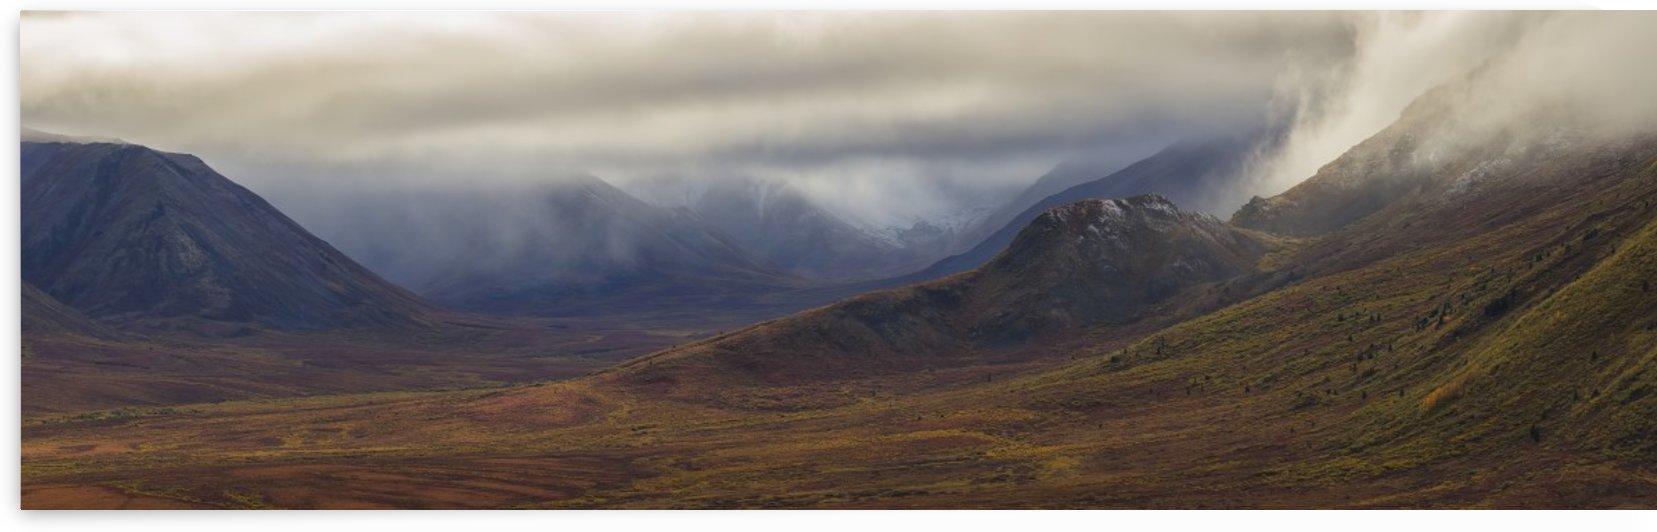 The Blackstone Valley along the Dempster Highway is shrouded in clouds in autumn; Yukon, Canada by PacificStock